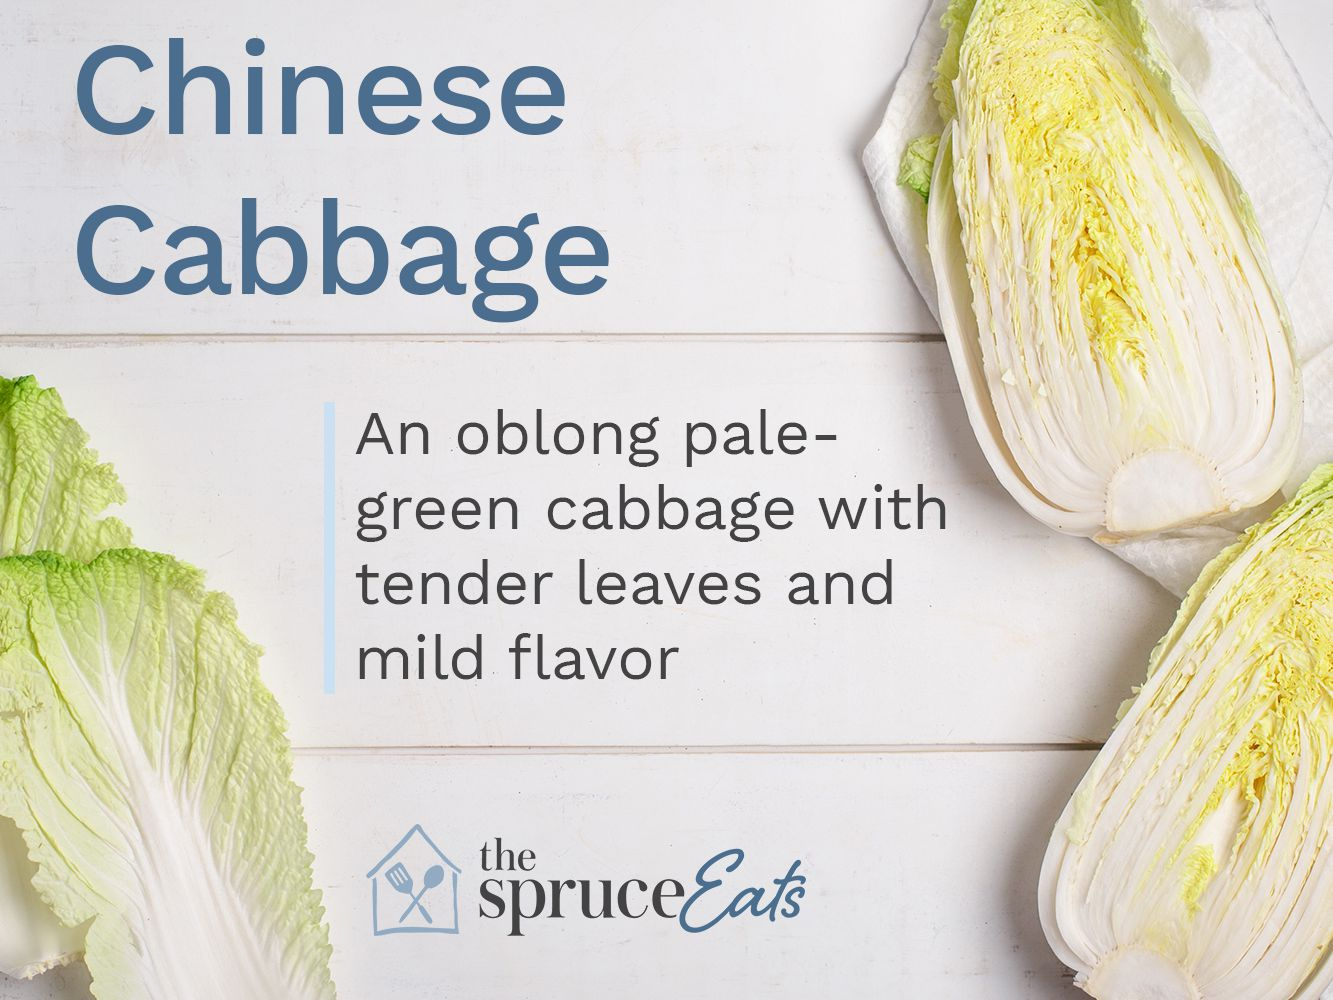 What Is Chinese Cabbage And How Is It Used